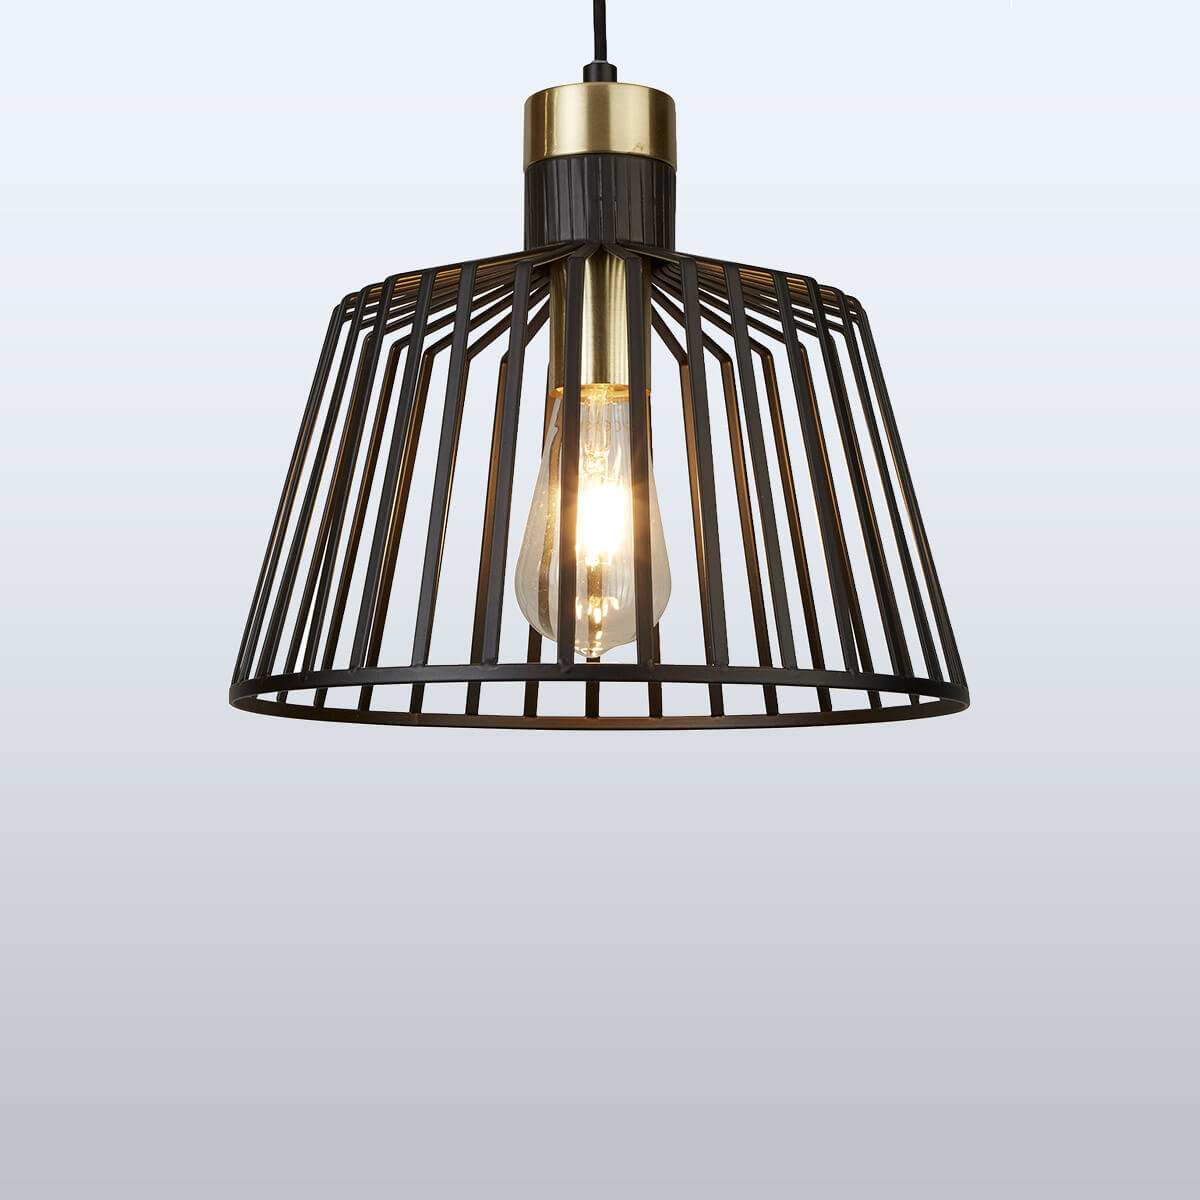 ceiling lights category featured 2 grey 1200x1200 2 1